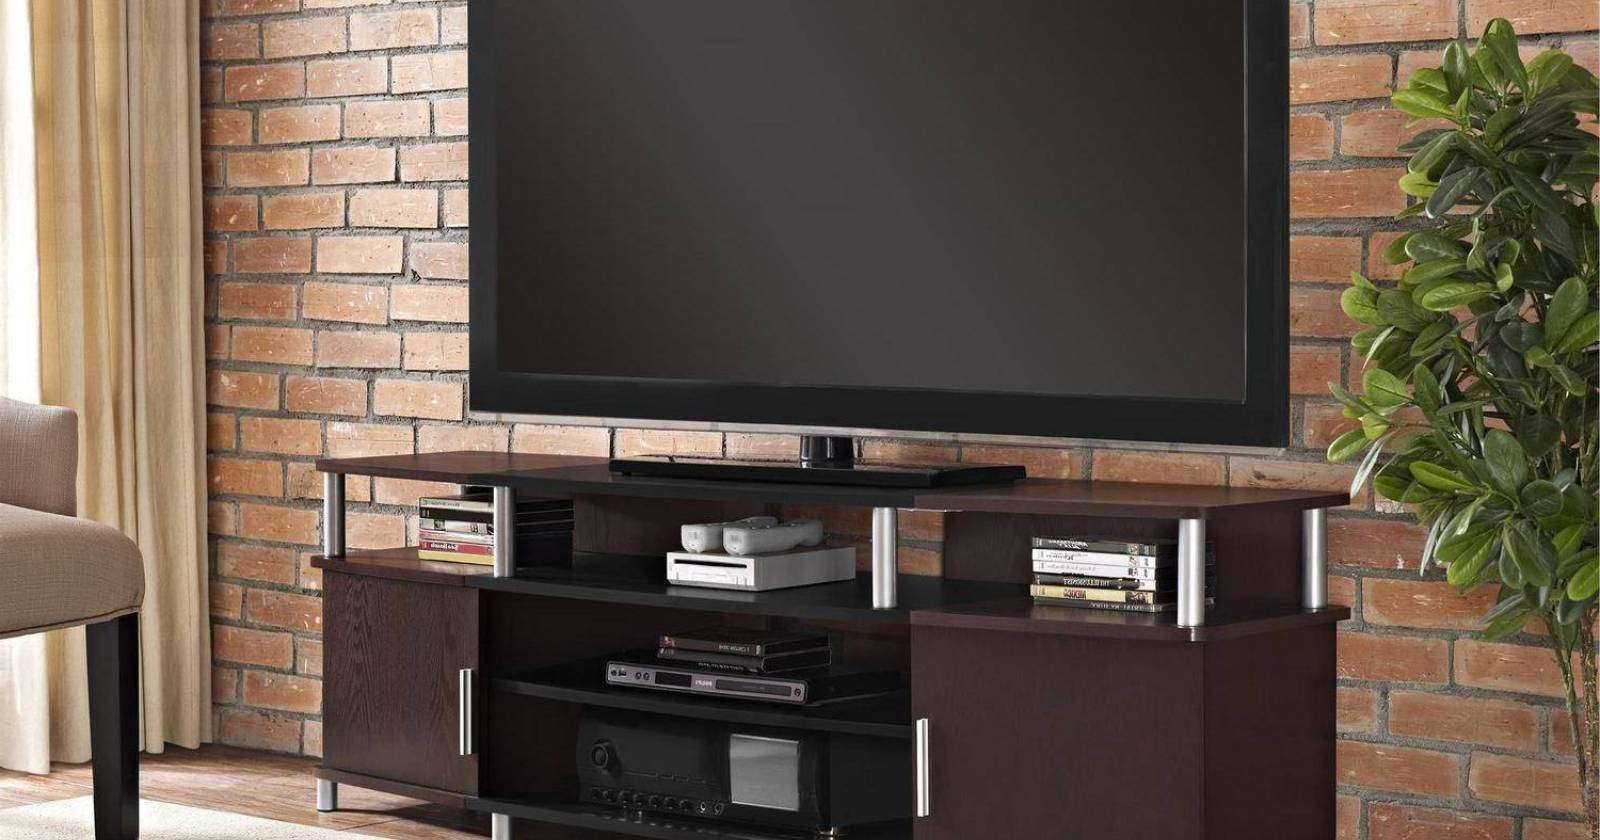 Tv : Tv Stands For 70 Inch Tvs Sweet Tv Stand For 70 Inch Tv Ikea Within Tv Stands For 70 Inch Tvs (View 11 of 15)